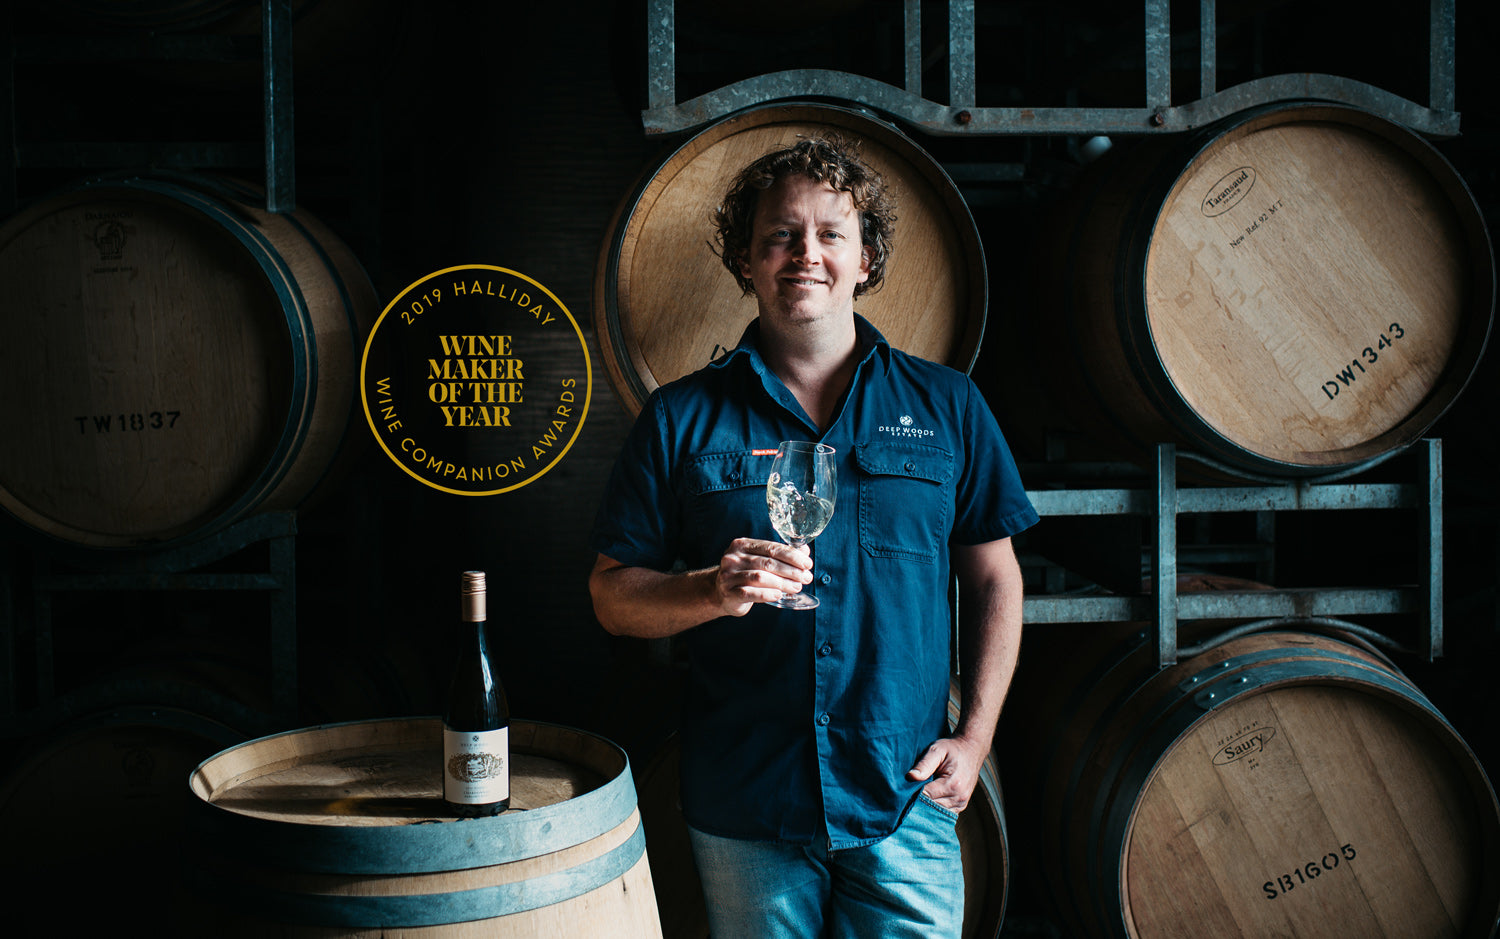 julian langworthy named winemaker of the year by james halliday